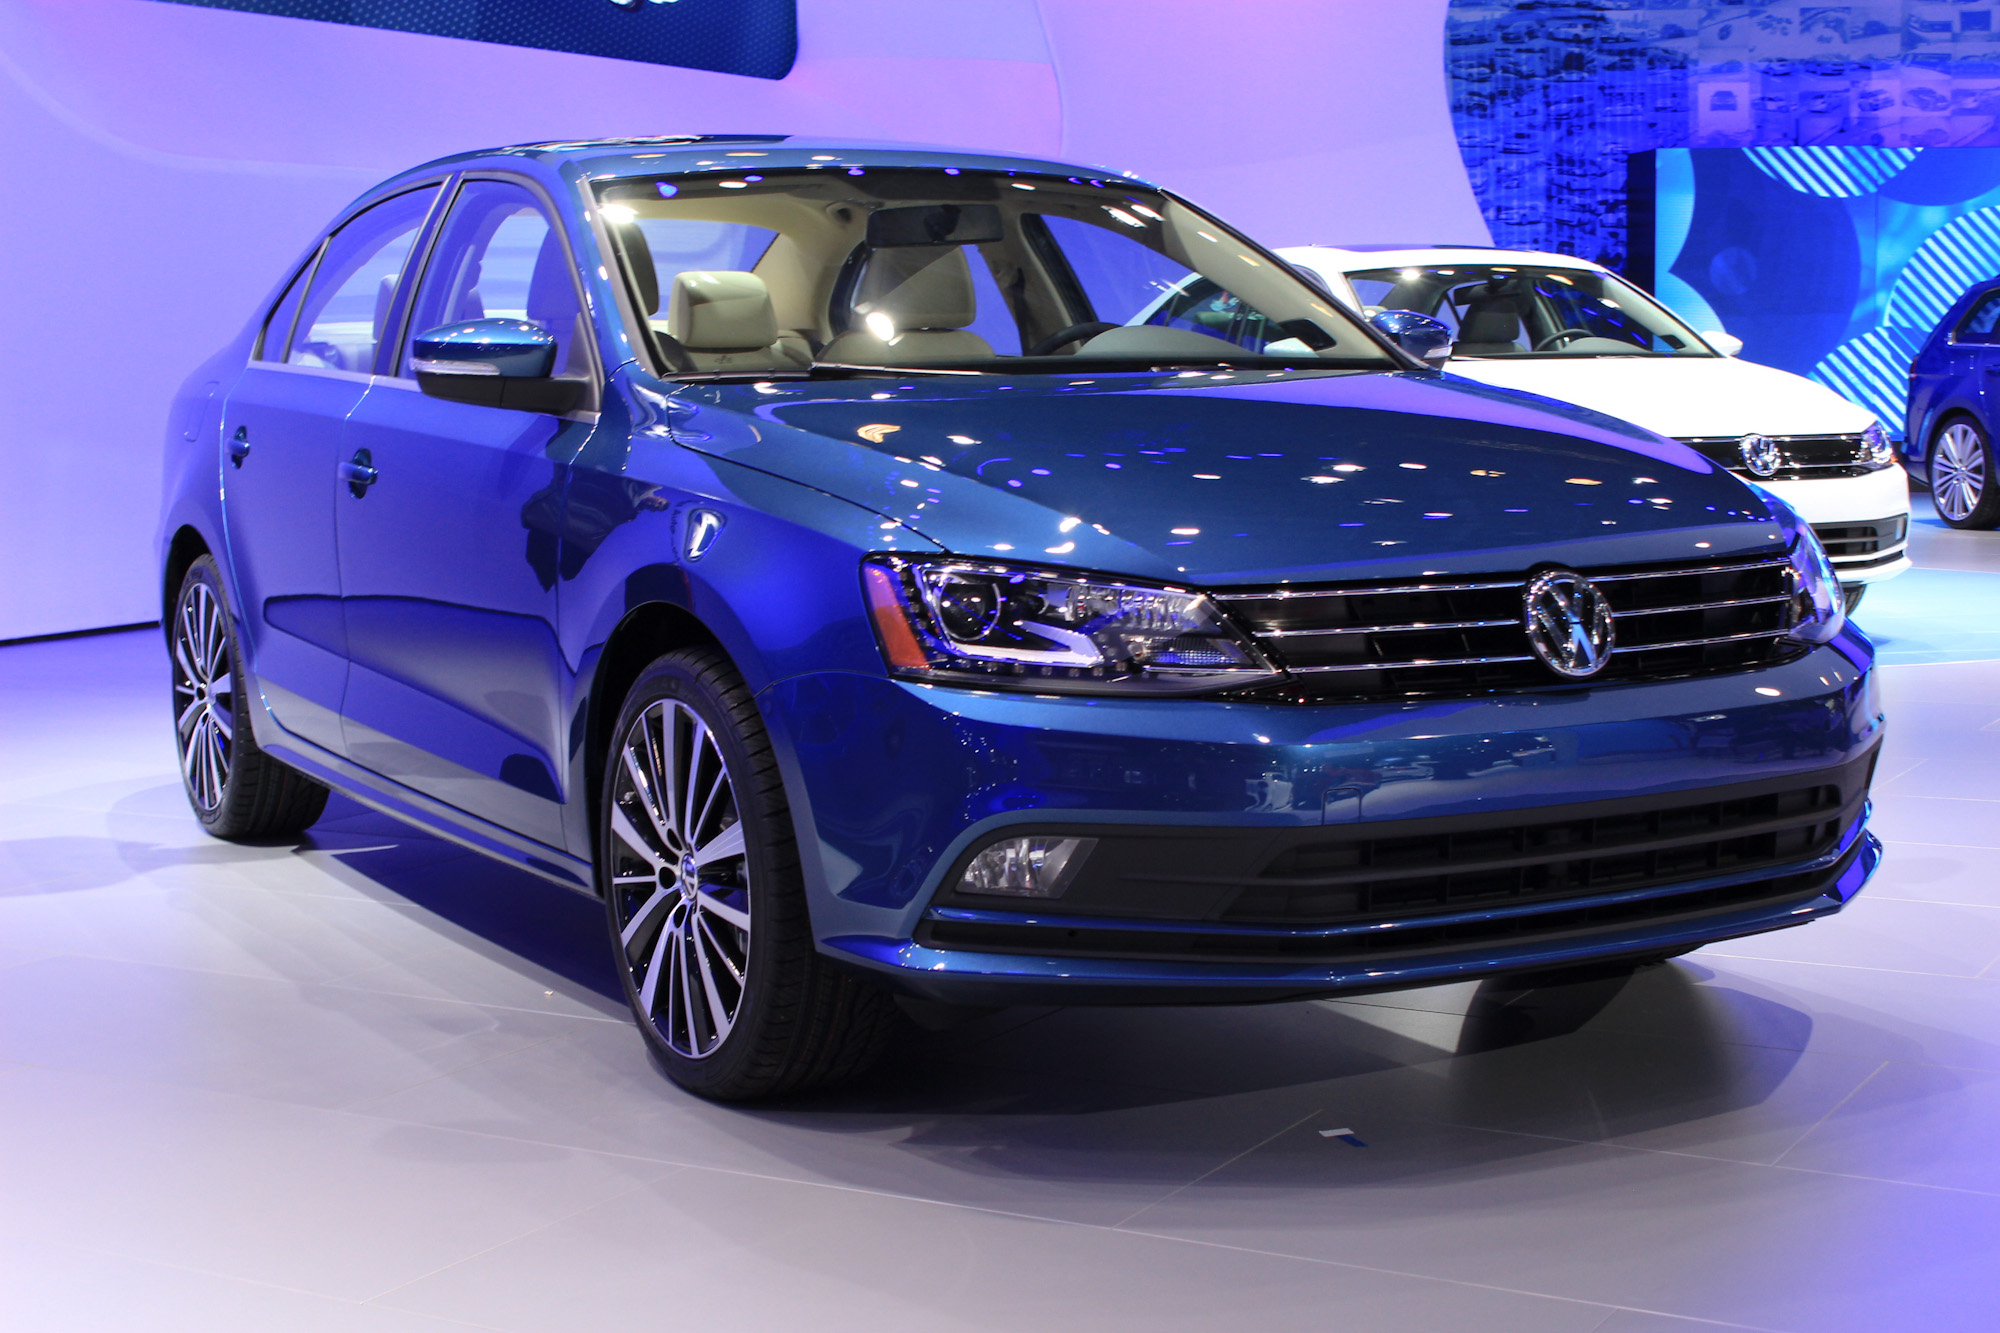 Brand-new 2015 Volkswagen TDI diesels back on sale after modifications